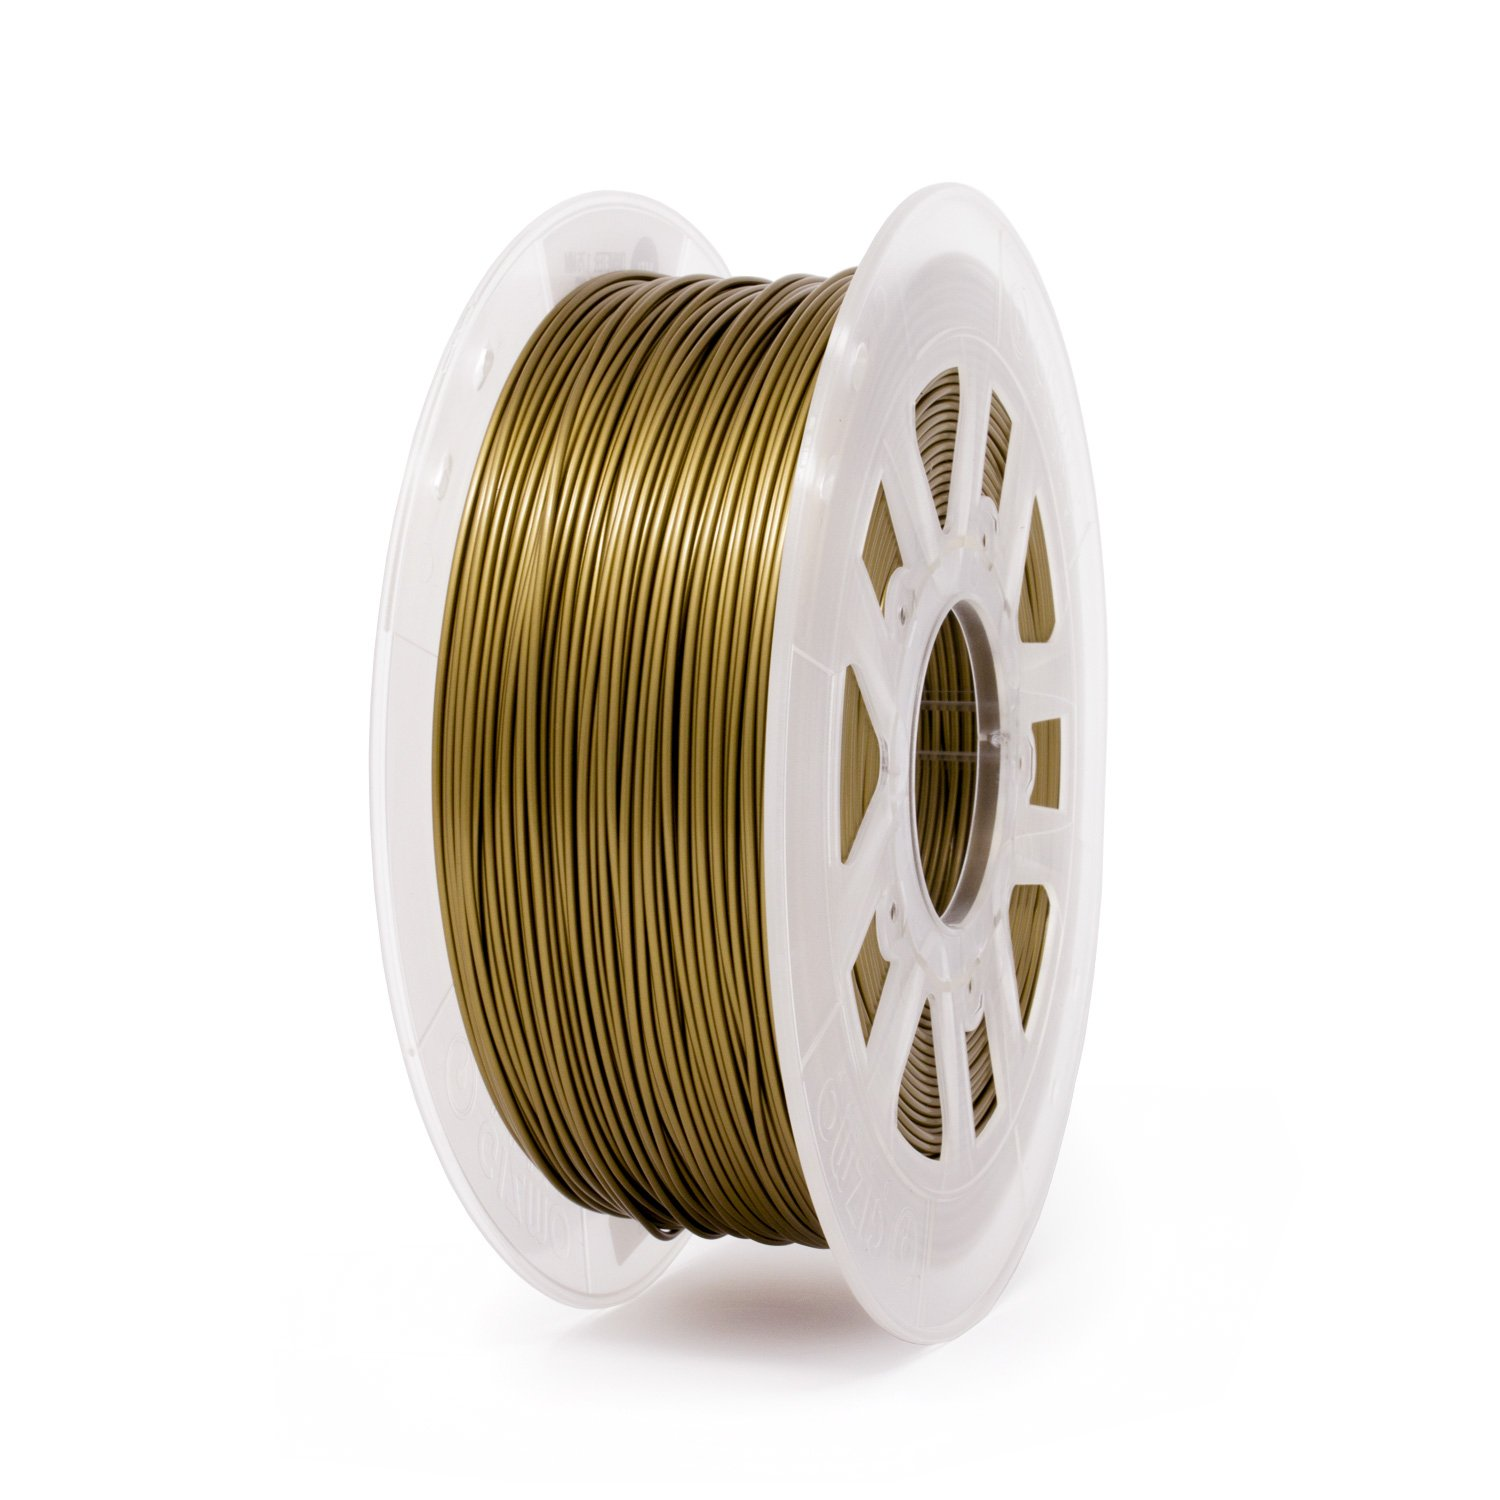 Gizmo Dorks 1 75mm Metal Bronze Filament, 1 kg for 3D Printers